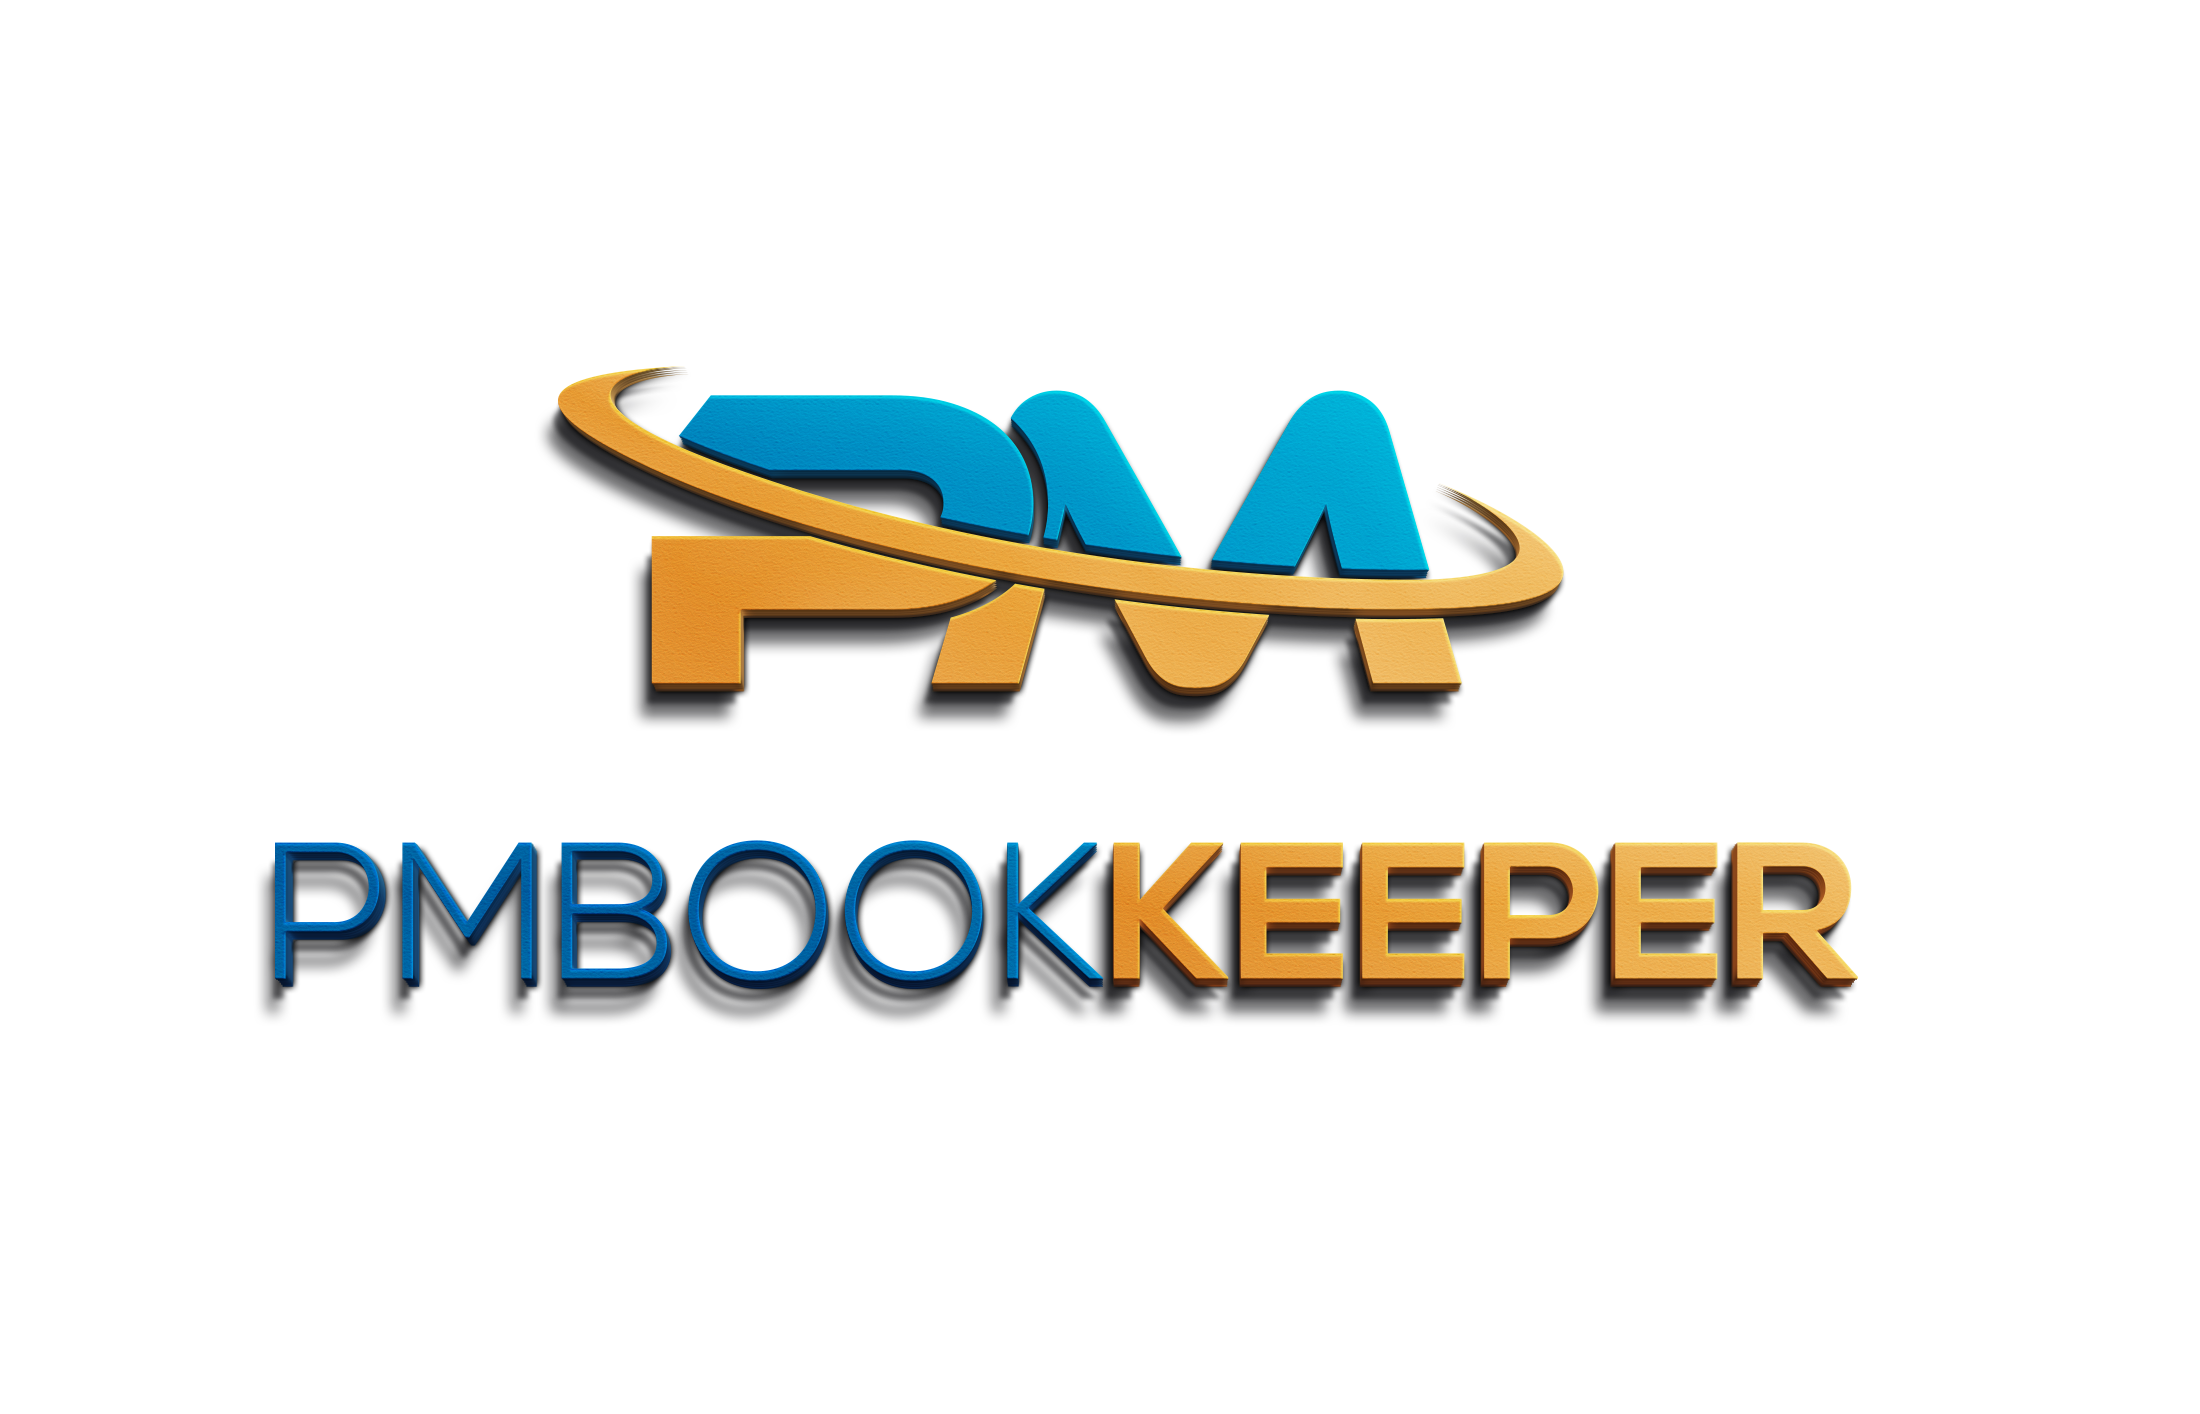 PM Bookkeeper